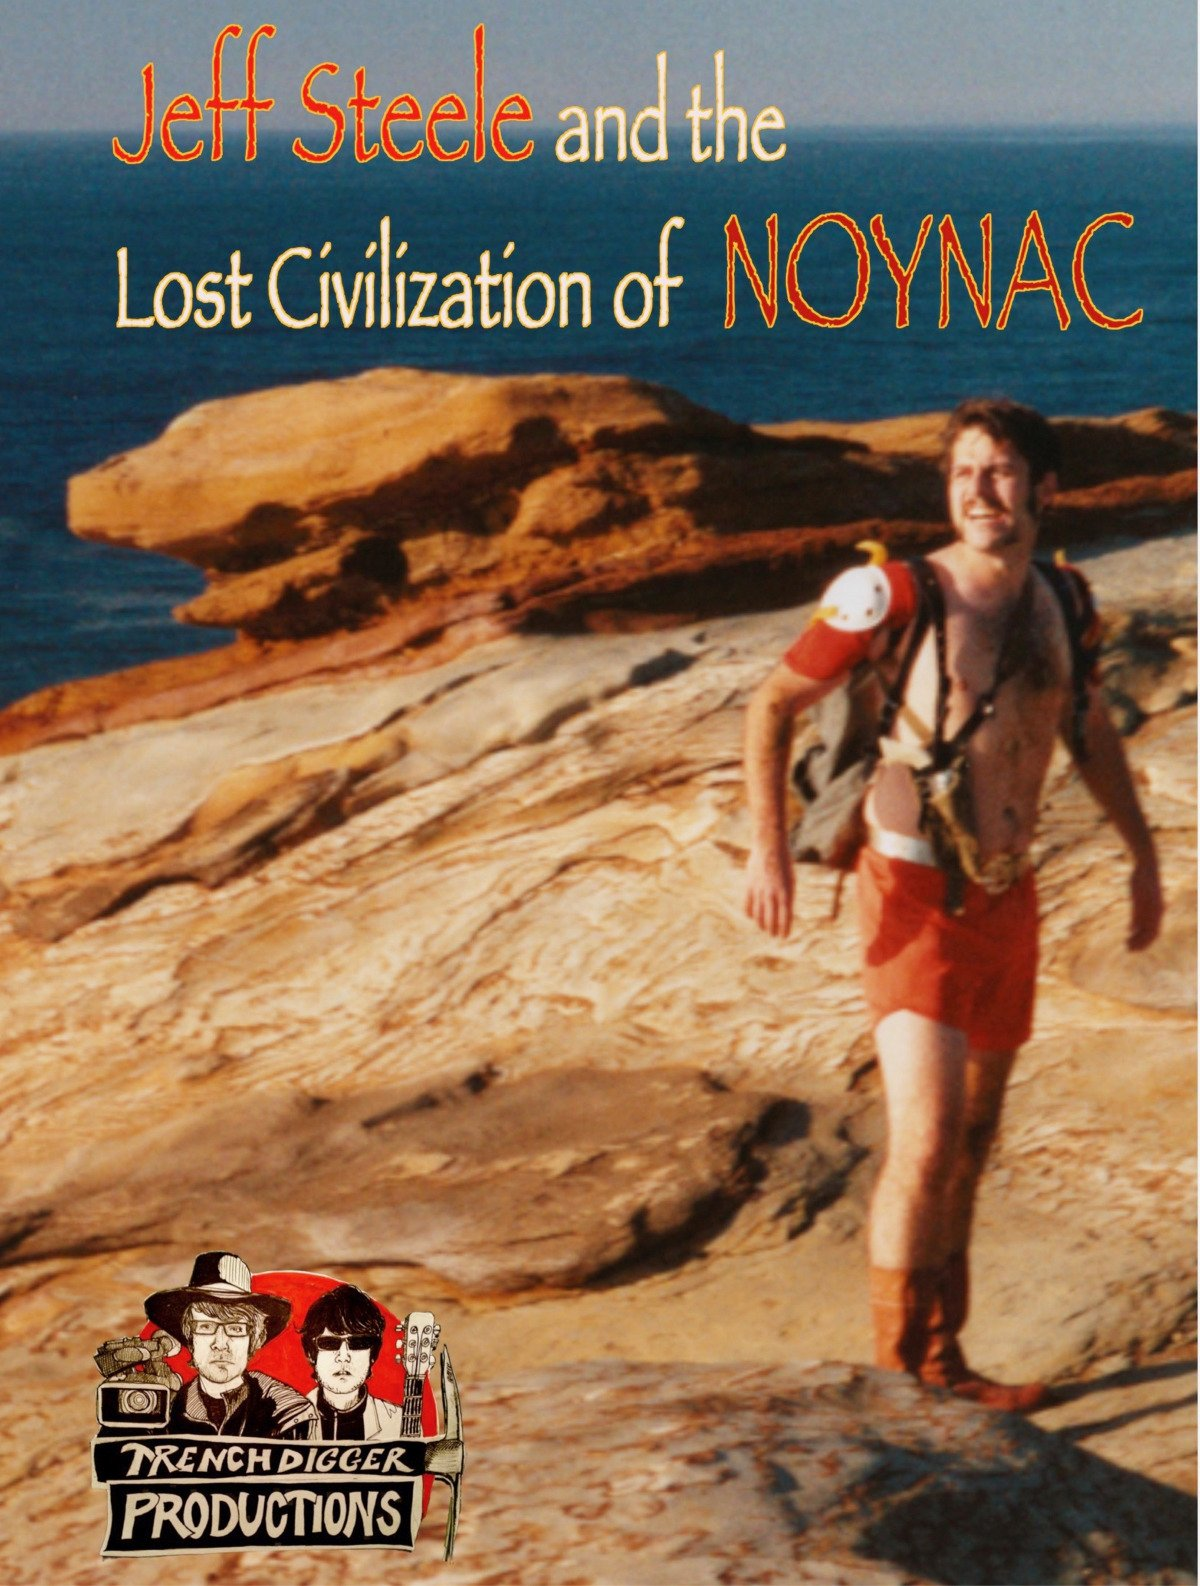 Jeff Steele and the Lost Civilization of NOYNAC